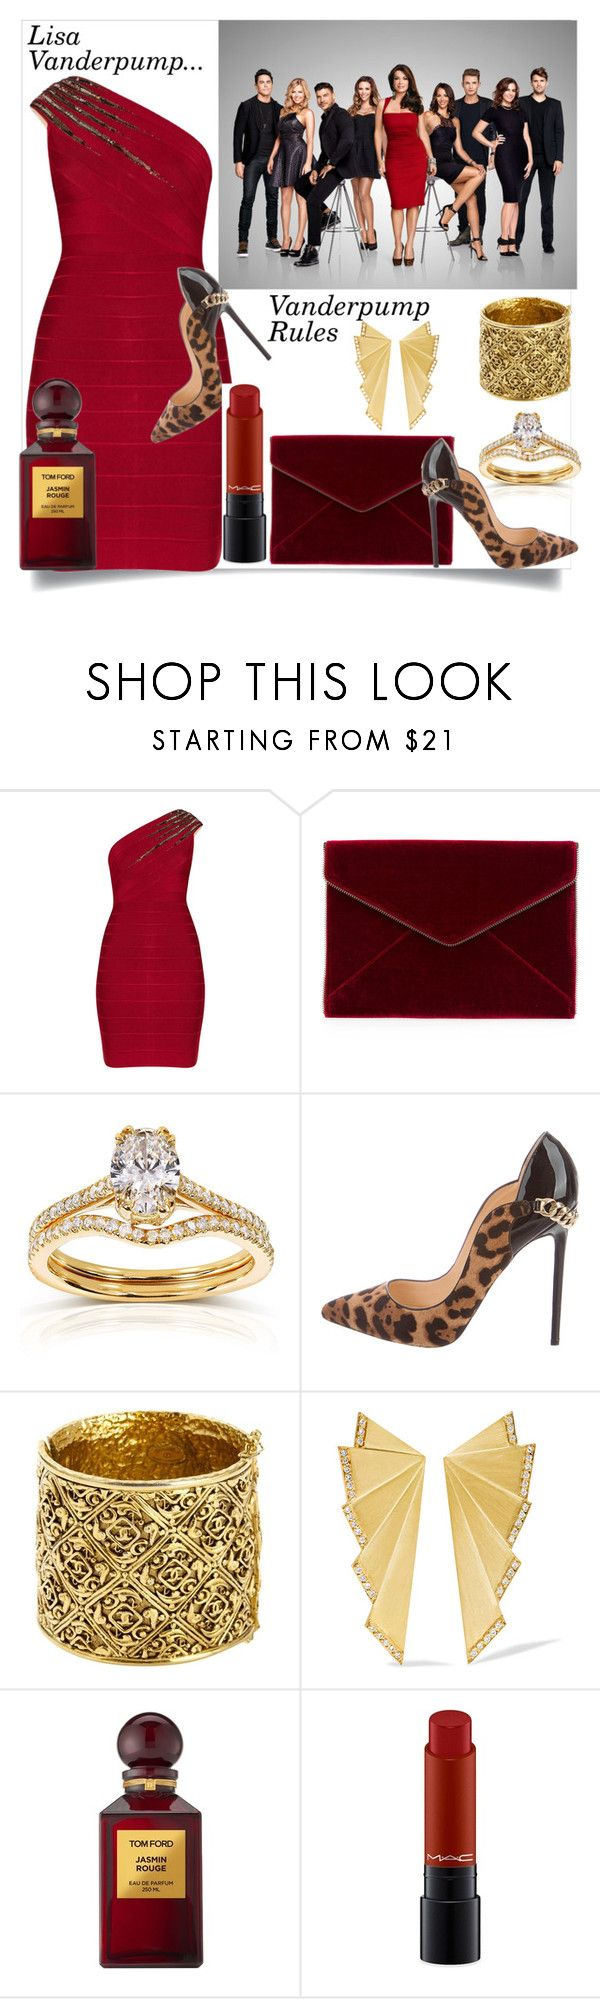 """Lisa Vanderpump: Vanderpump Rules"" by helenaymangual ❤ liked on Polyvore featuring Hervé Léger, Rebecca Minkoff, Annello, Christian Louboutin, Chanel, Ileana Makri, Tom Ford and MAC Cosmetics"